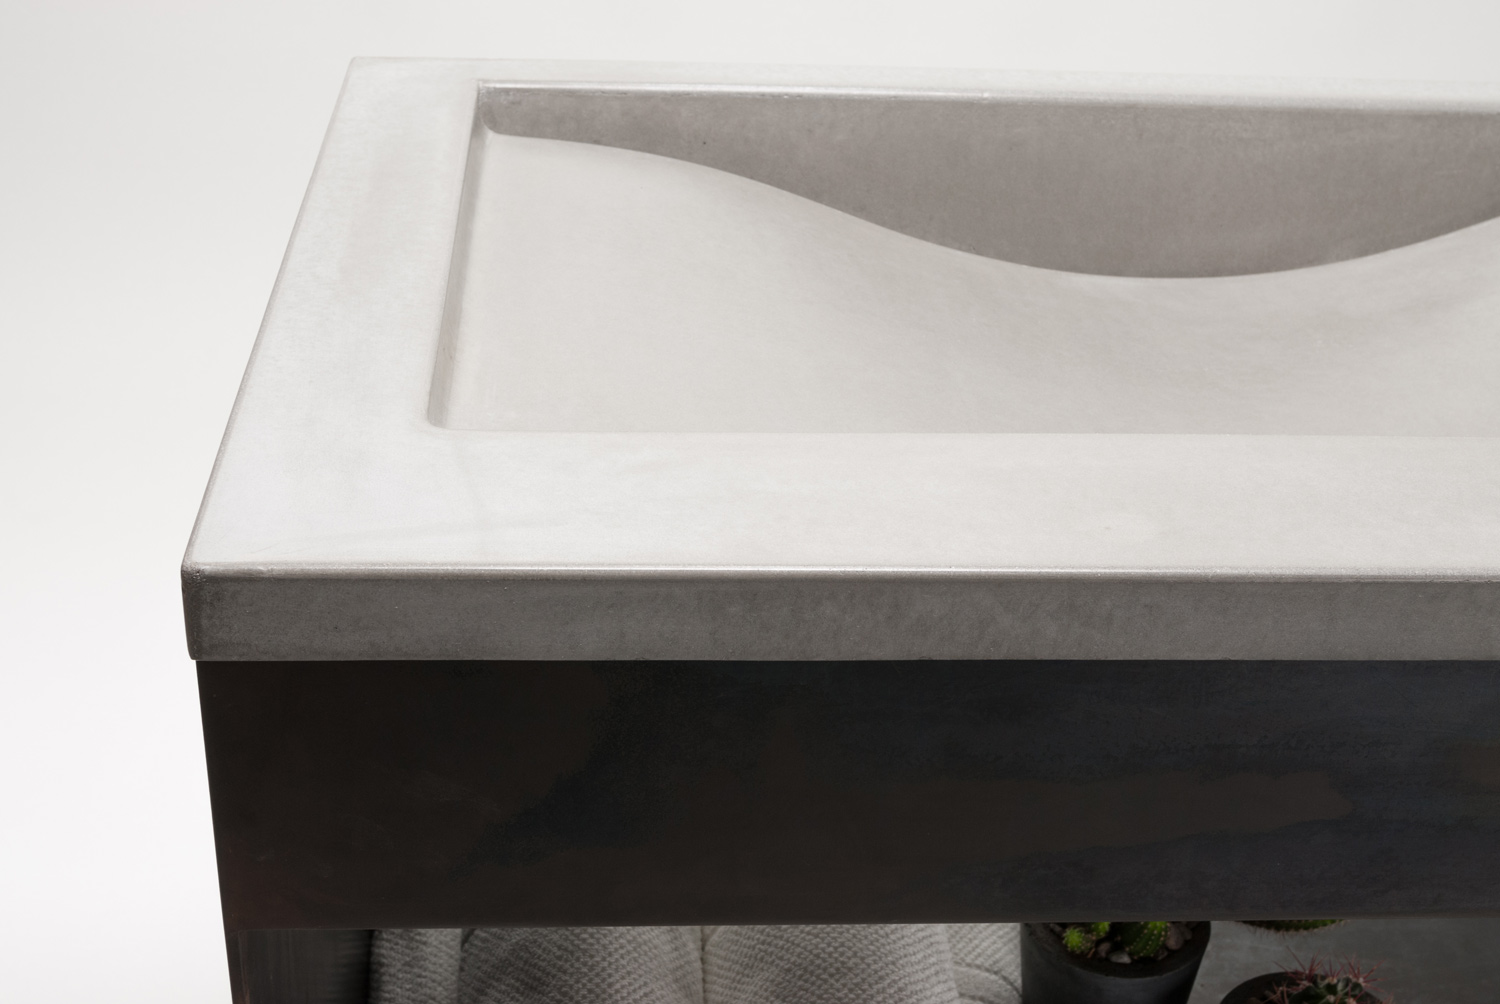 Concrete wave sink on a natural steel sink base